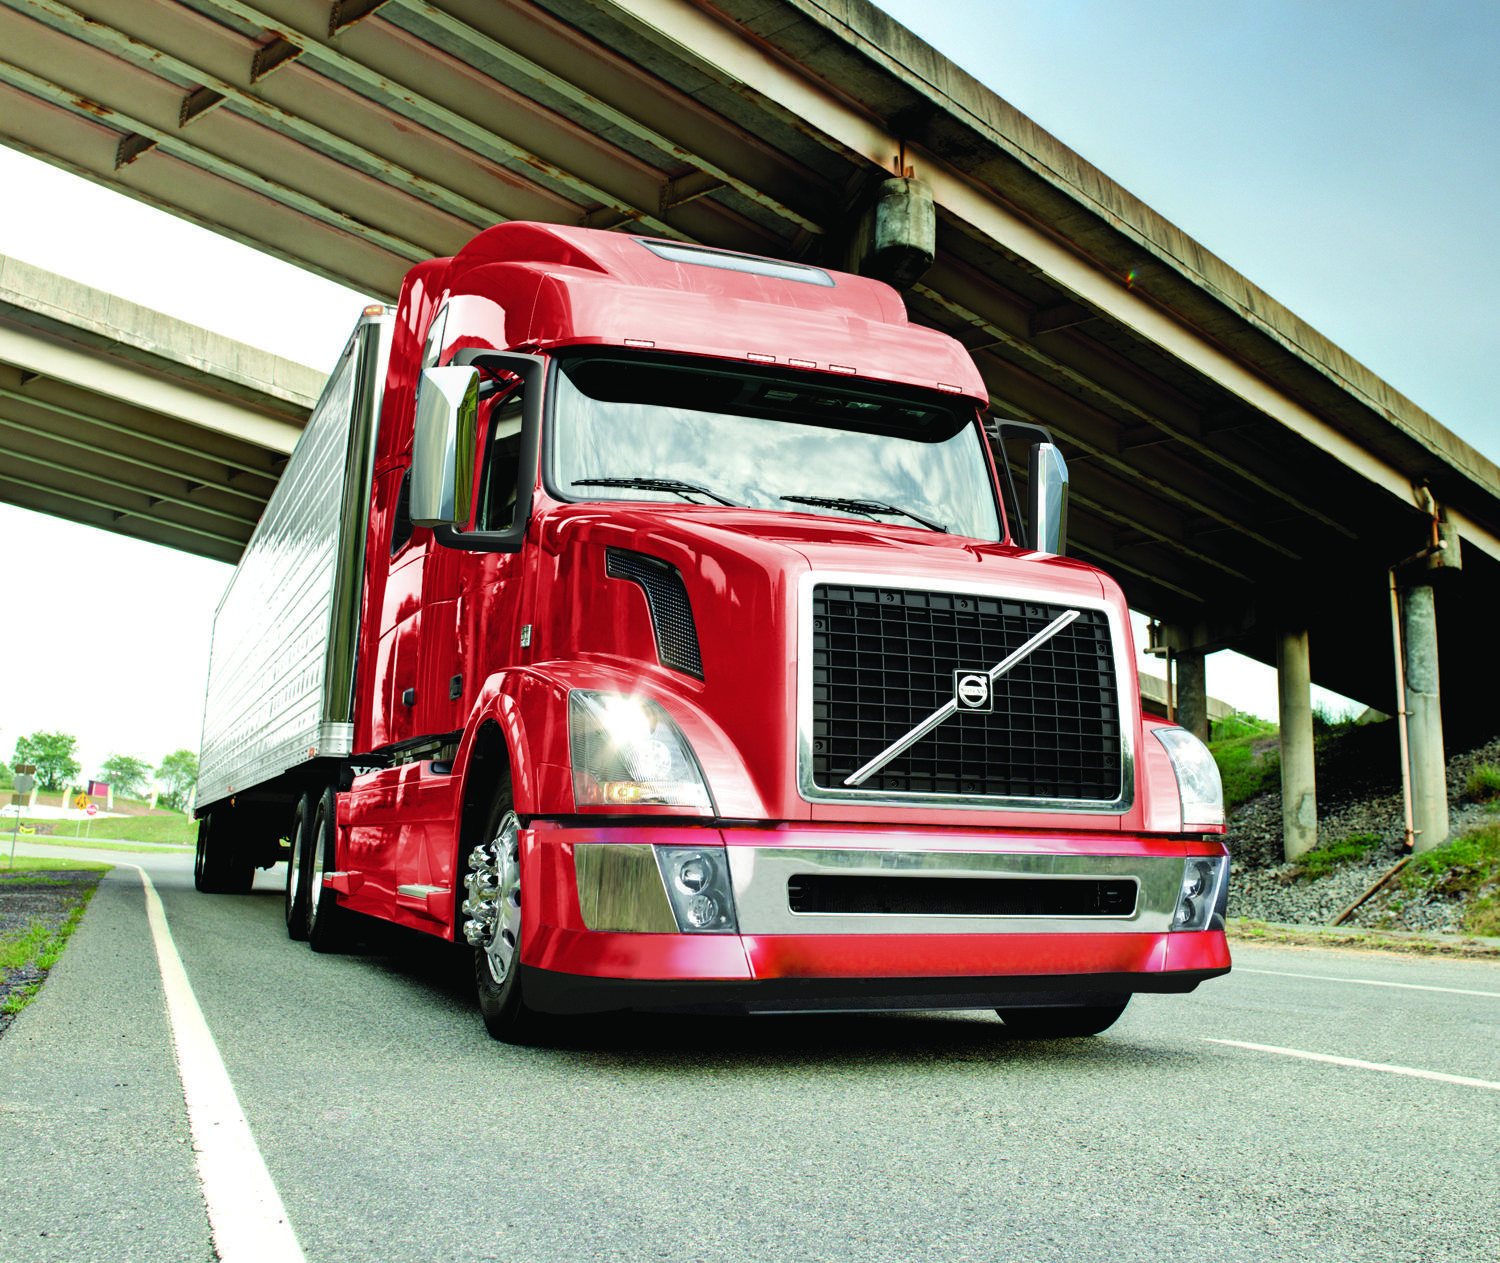 Volvo issues recall for approximately 8,200 trucks